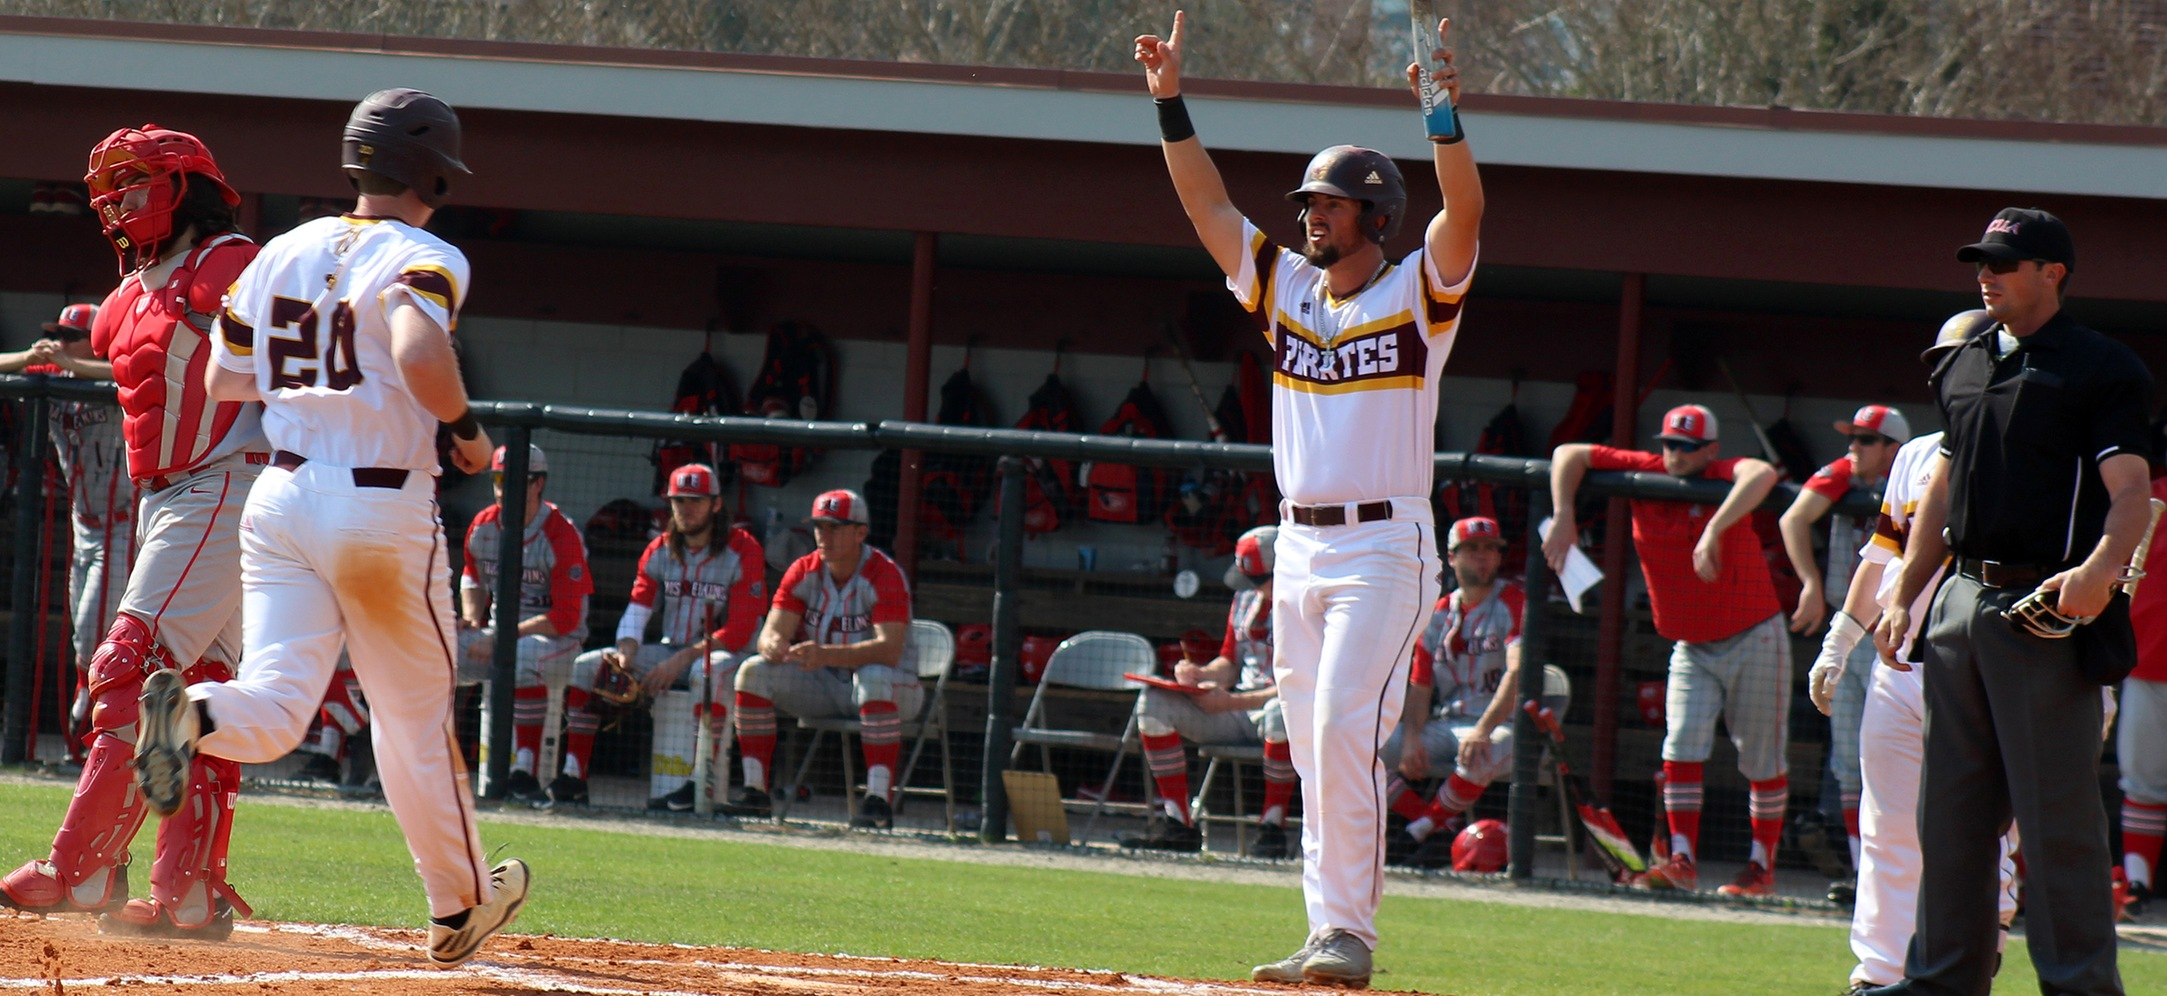 Armstrong State Baseball Outslugs Albany State, 10-8, On Tuesday